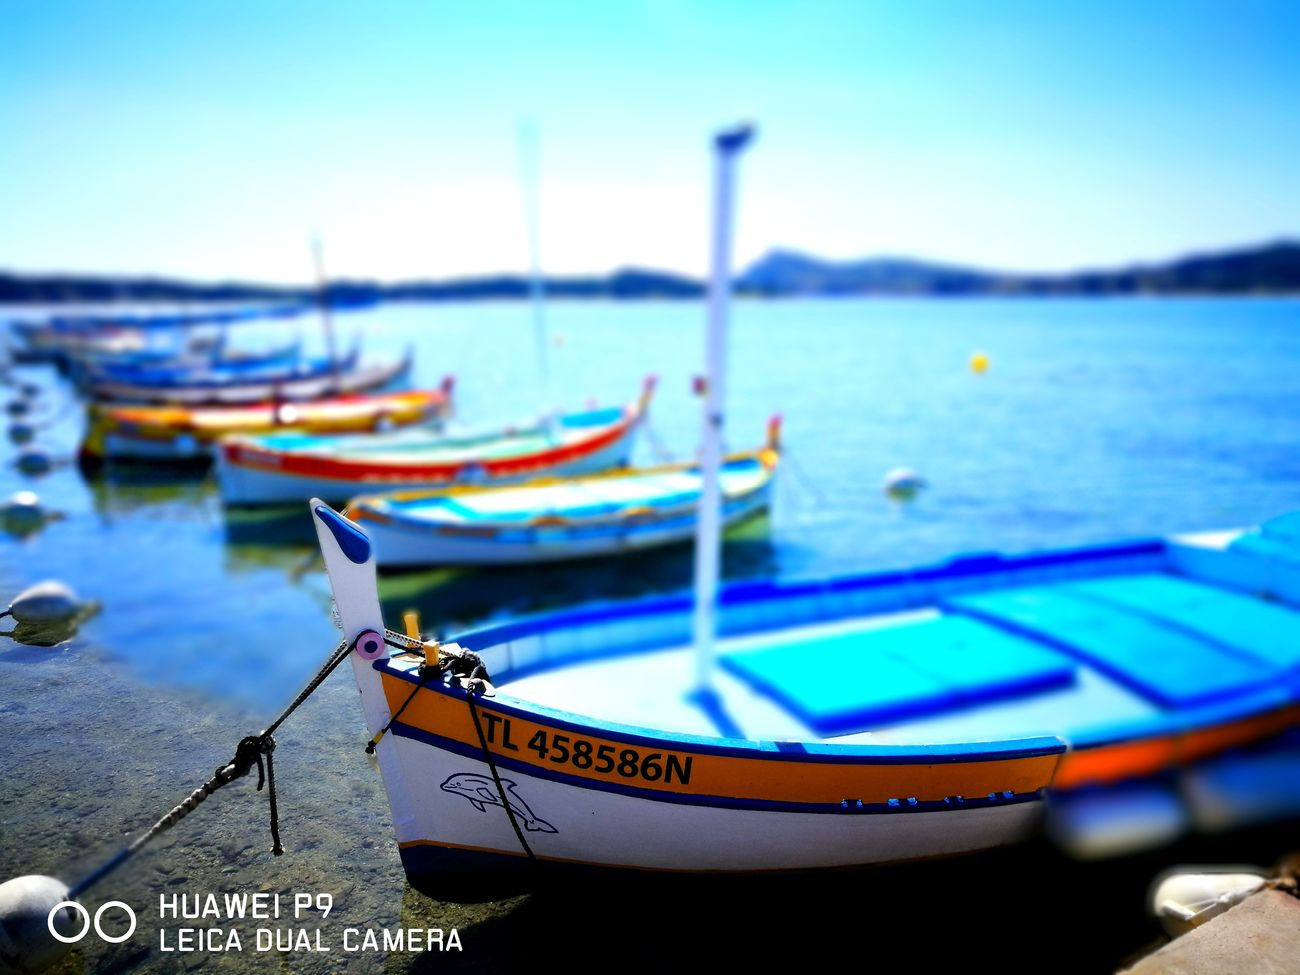 Bateau Var Six Fours Les Plages Nautical Vessel Water Transportation Moored Sea Mode Of Transport Blue Harbor No People Beach Scenics Tranquility Day Outdoors Travel Destinations Nature Gondola - Traditional Boat Sky Close-up